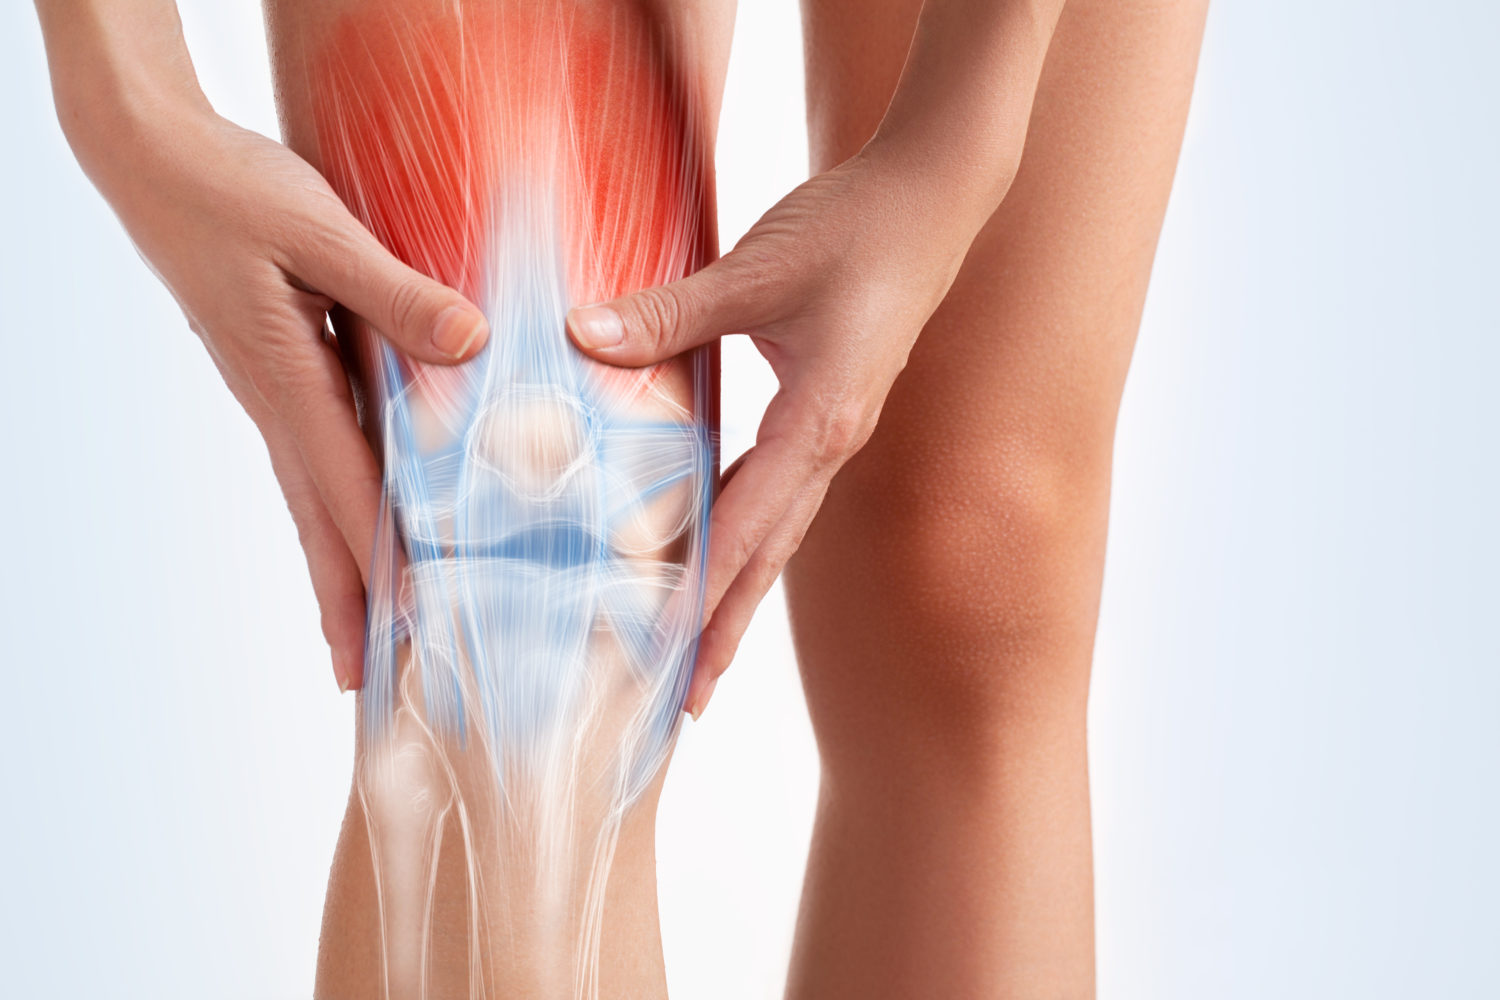 Meniscus Tear Treatment - No Fault Doctor in Forest Hills, NY